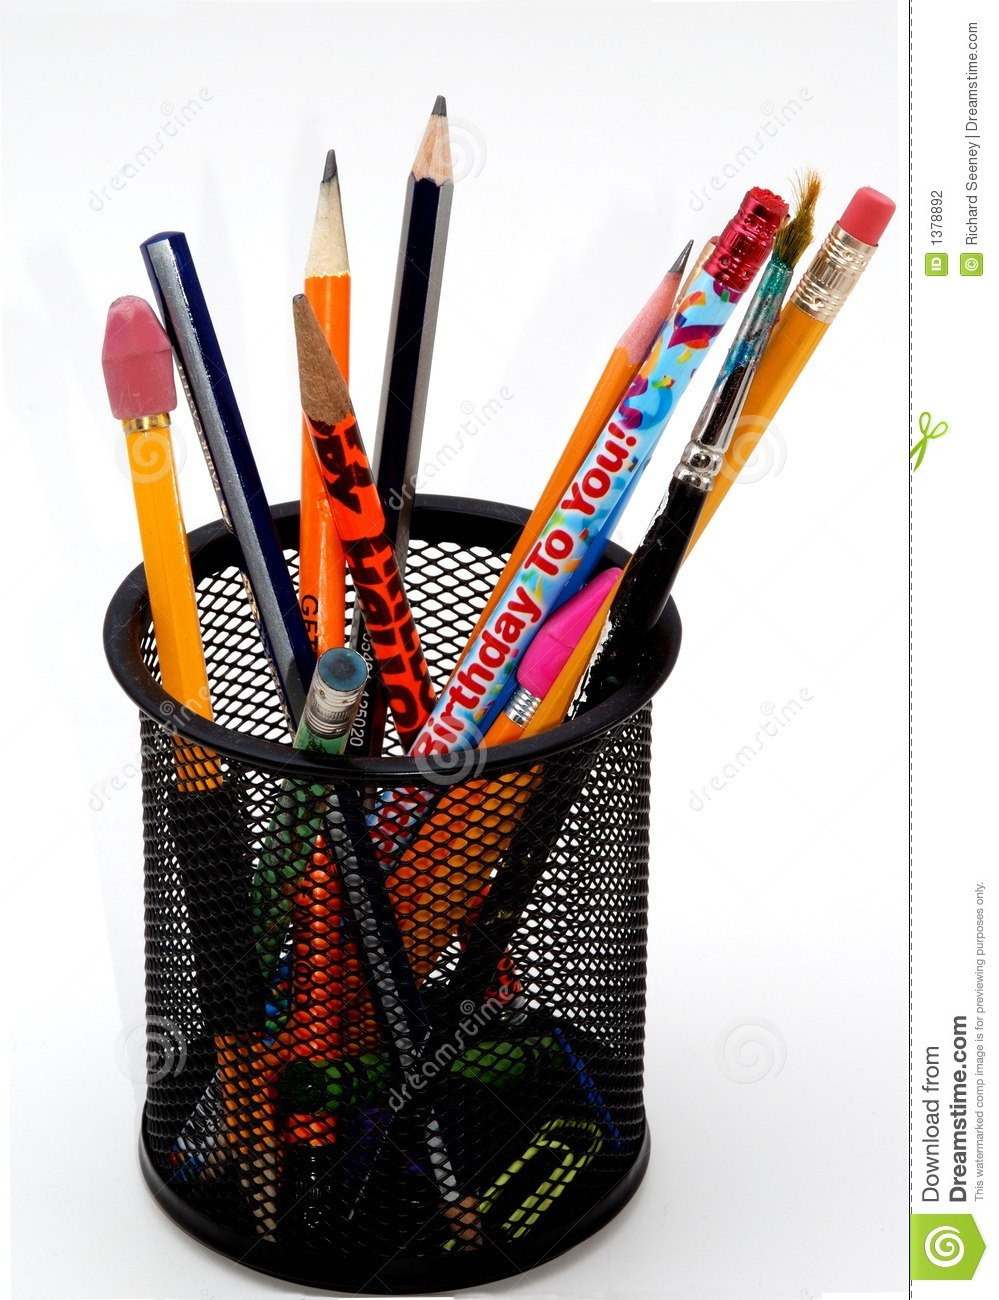 Pencil And In Color Drawing: Desktop Pencil Holder Stock Photography